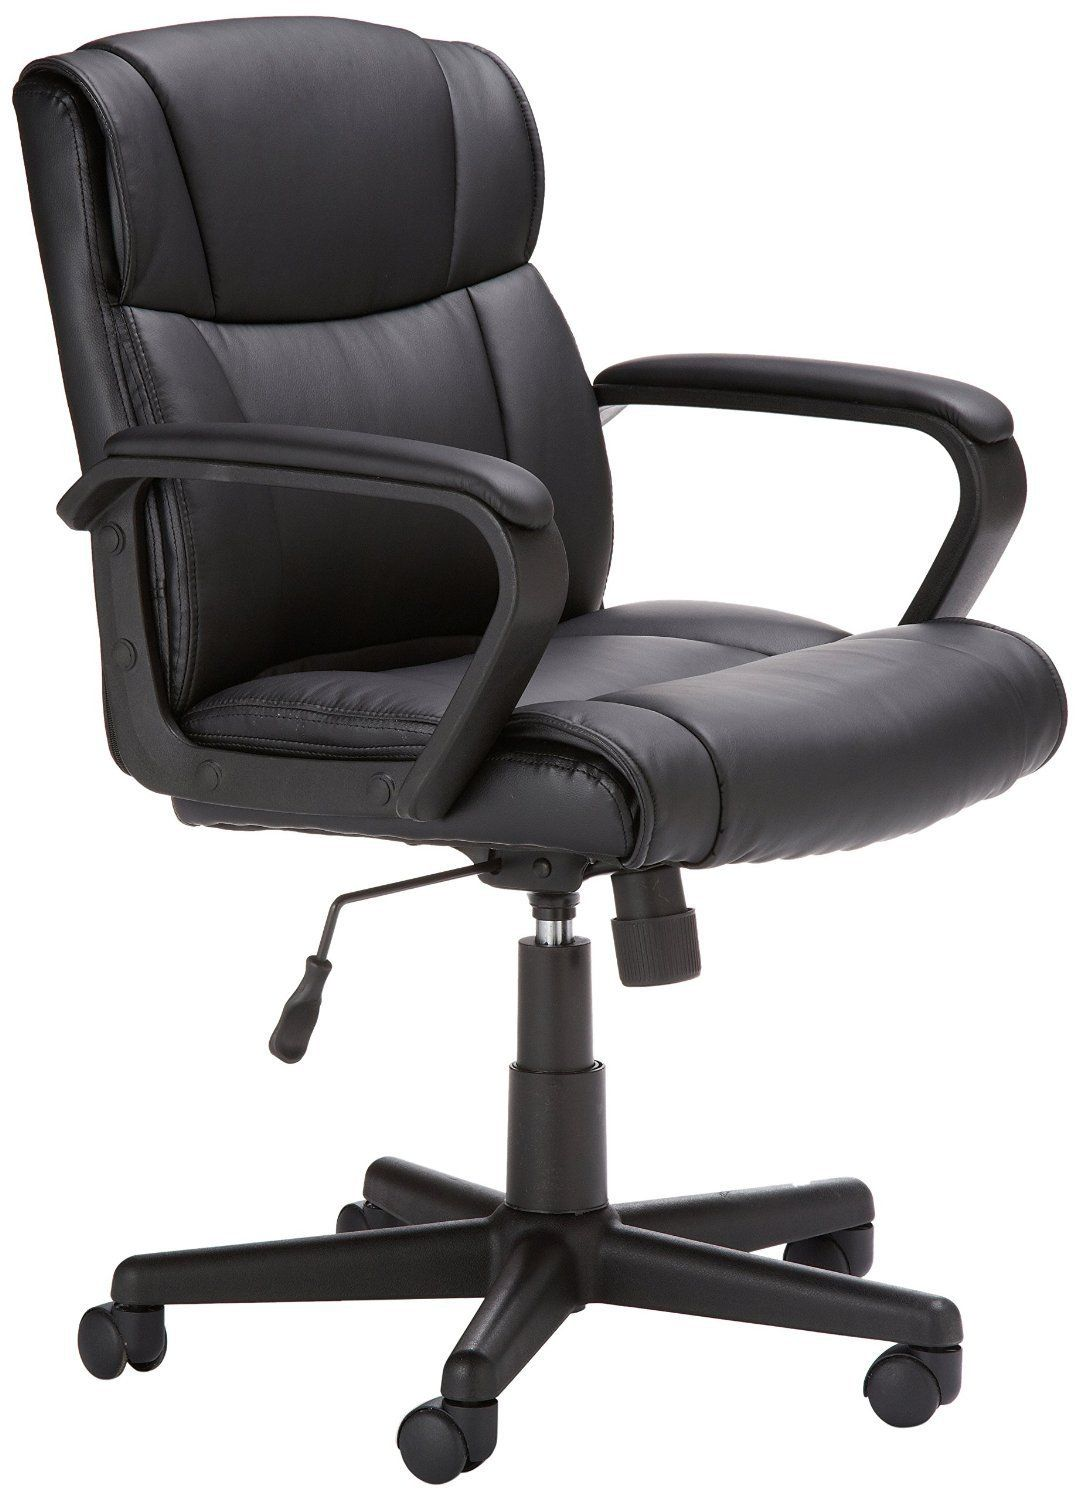 choosing an office chair. The Comfortable Seat Will Bring Your Work To Be Done Perfectly. Moreover, Choosing Office Chair Is Really Important Because It Does Provide You With A An